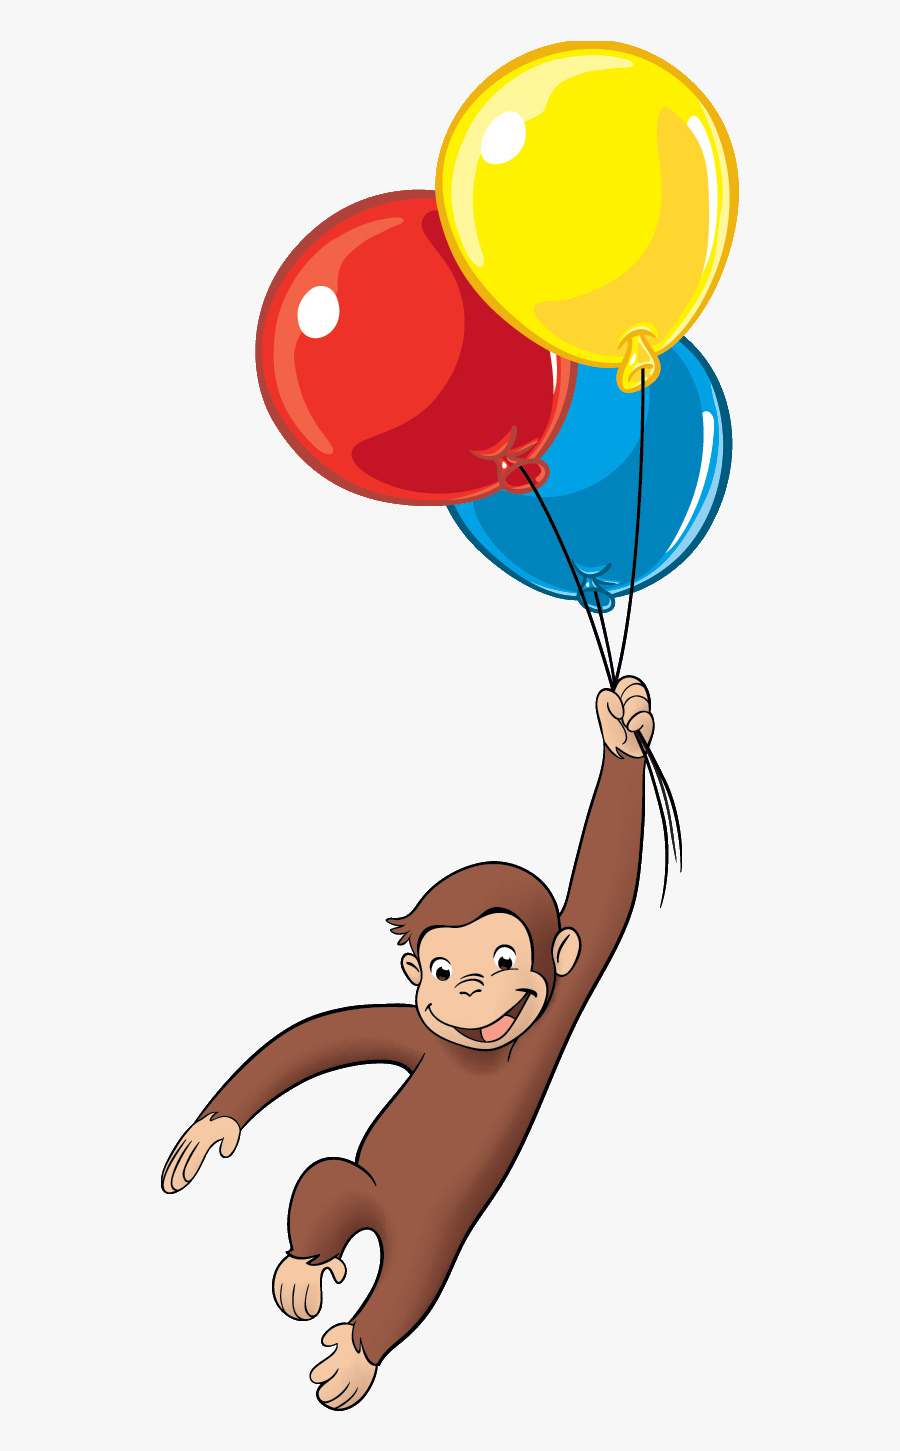 Curious George Png - Curious George Balloons Png, Transparent Clipart